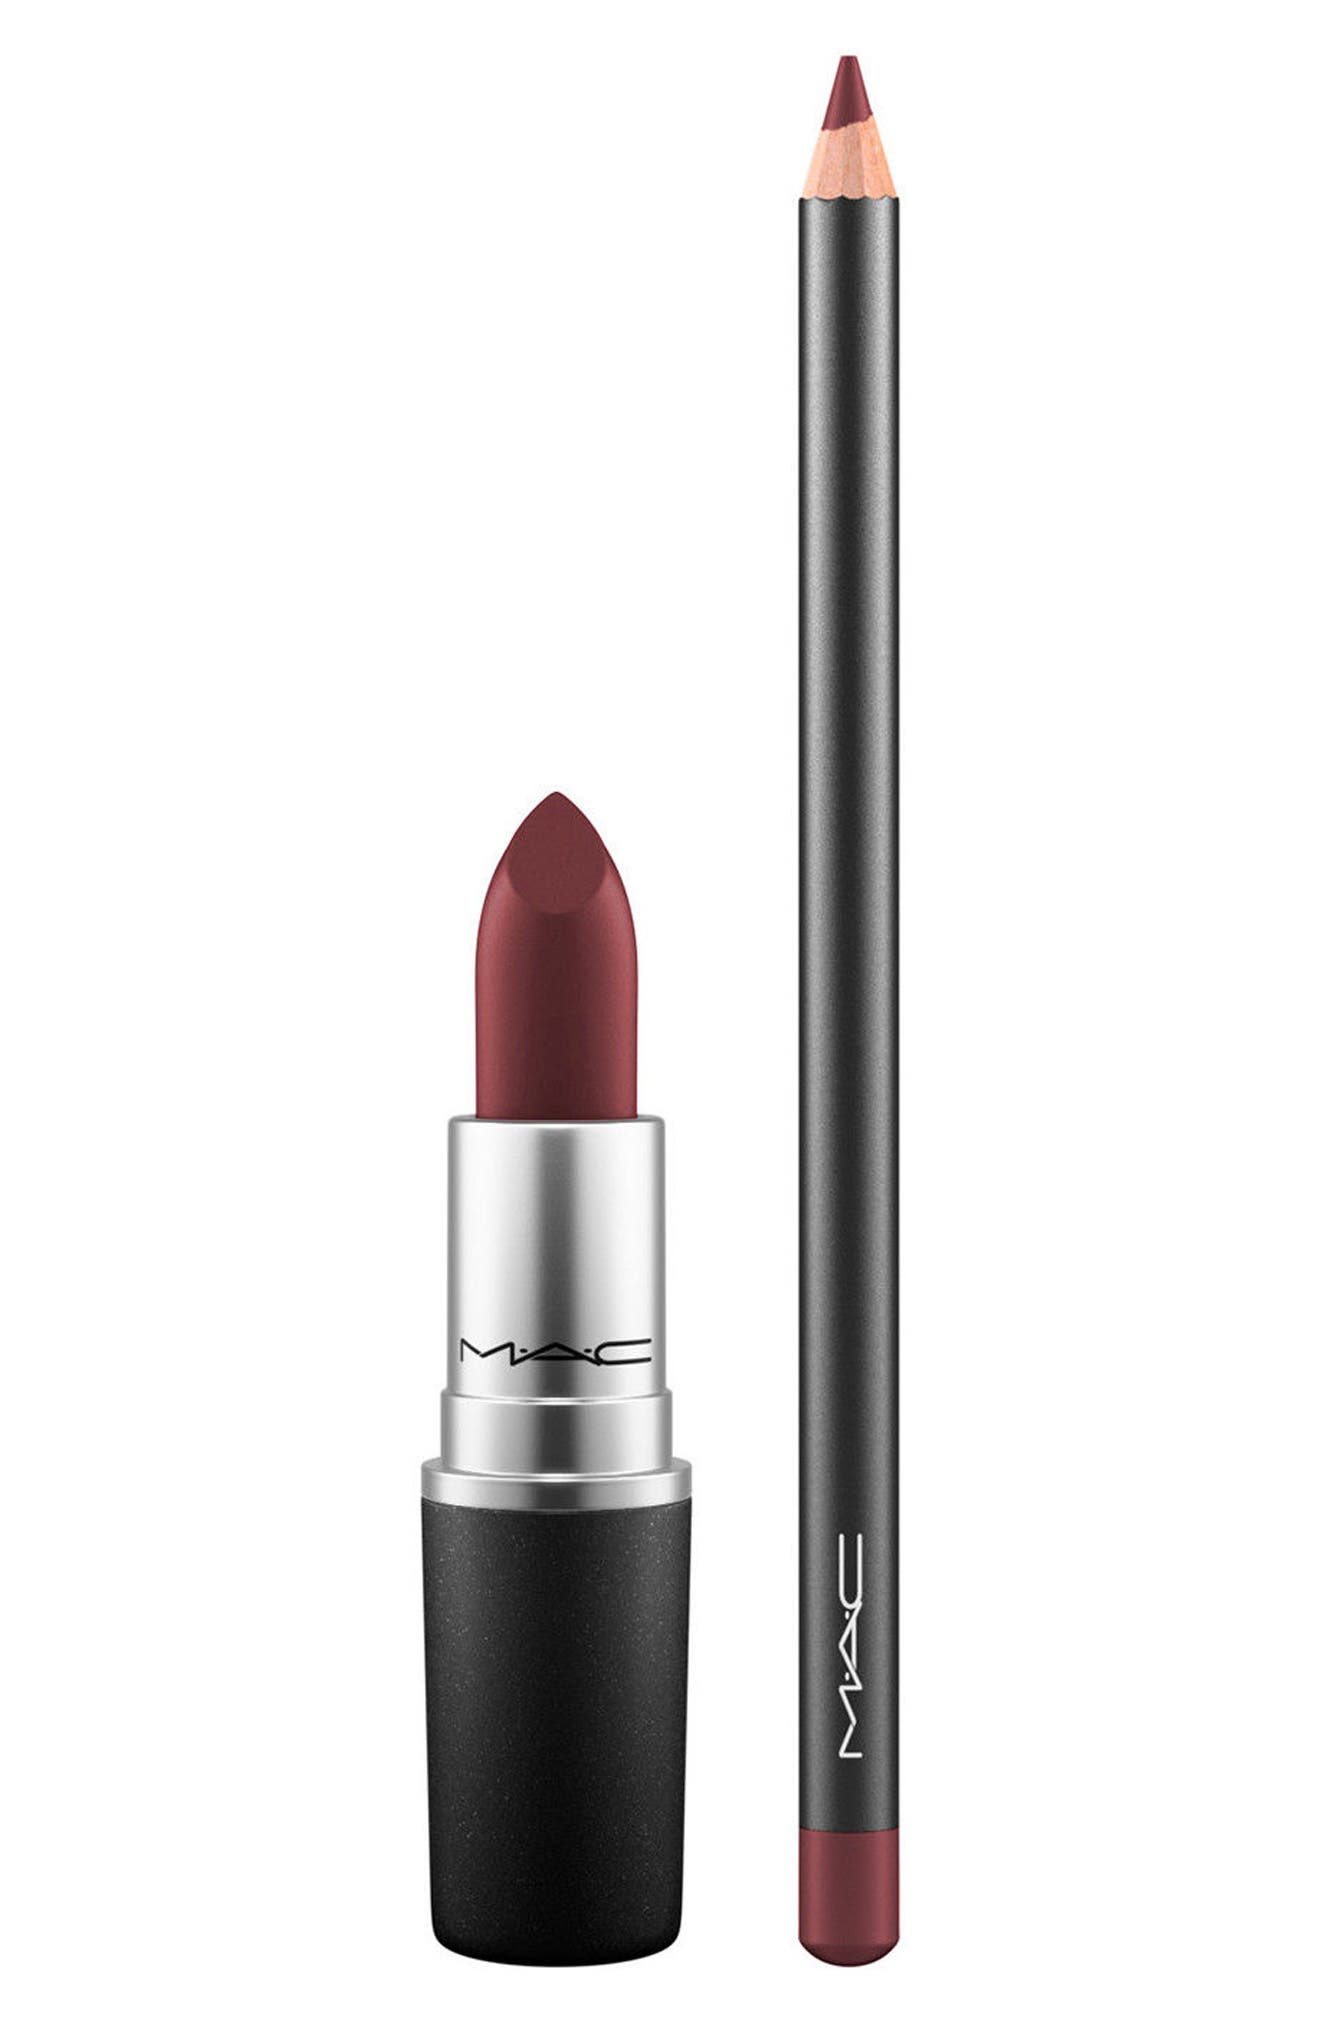 MAC Lip Duo ($34.50 Value)